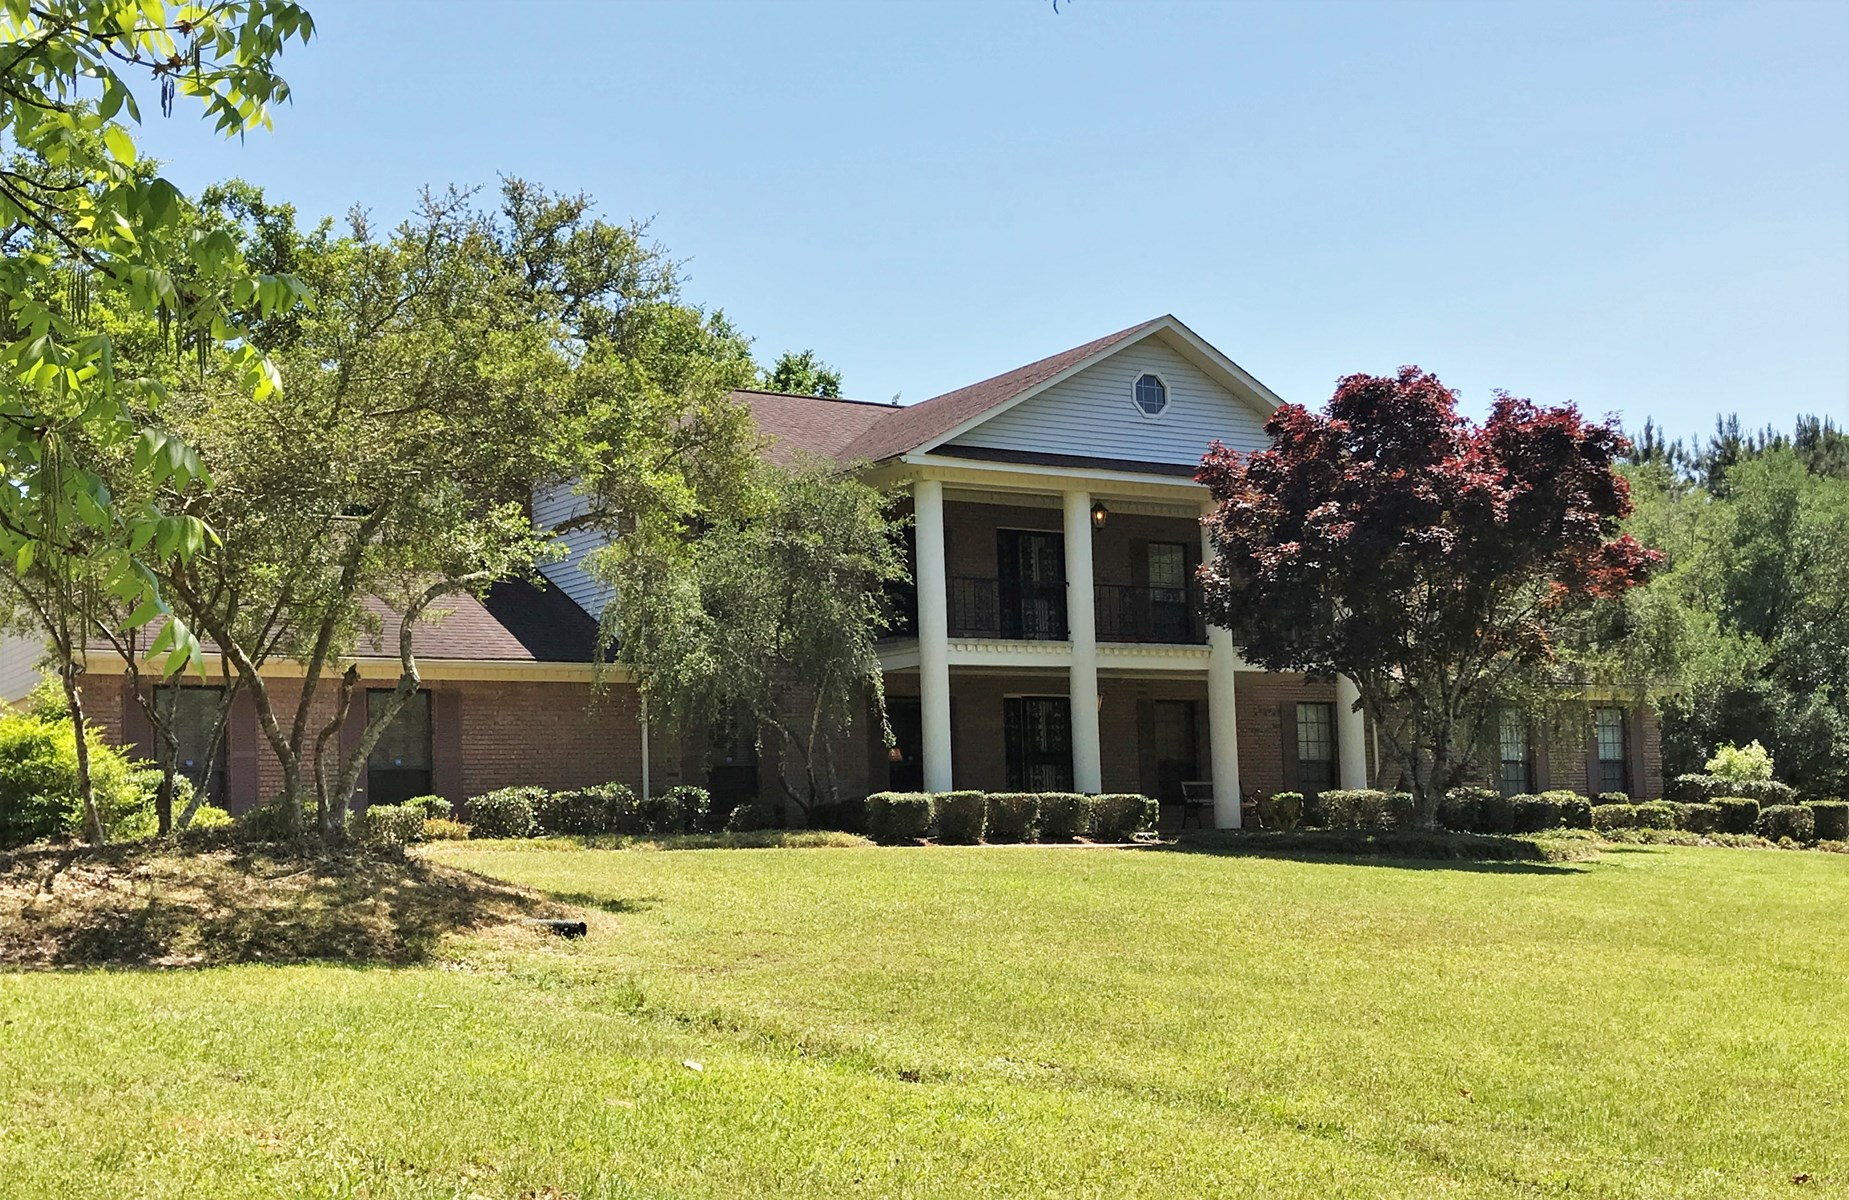 Home for Sale - 700 MS-182, Eupora, MS 39744